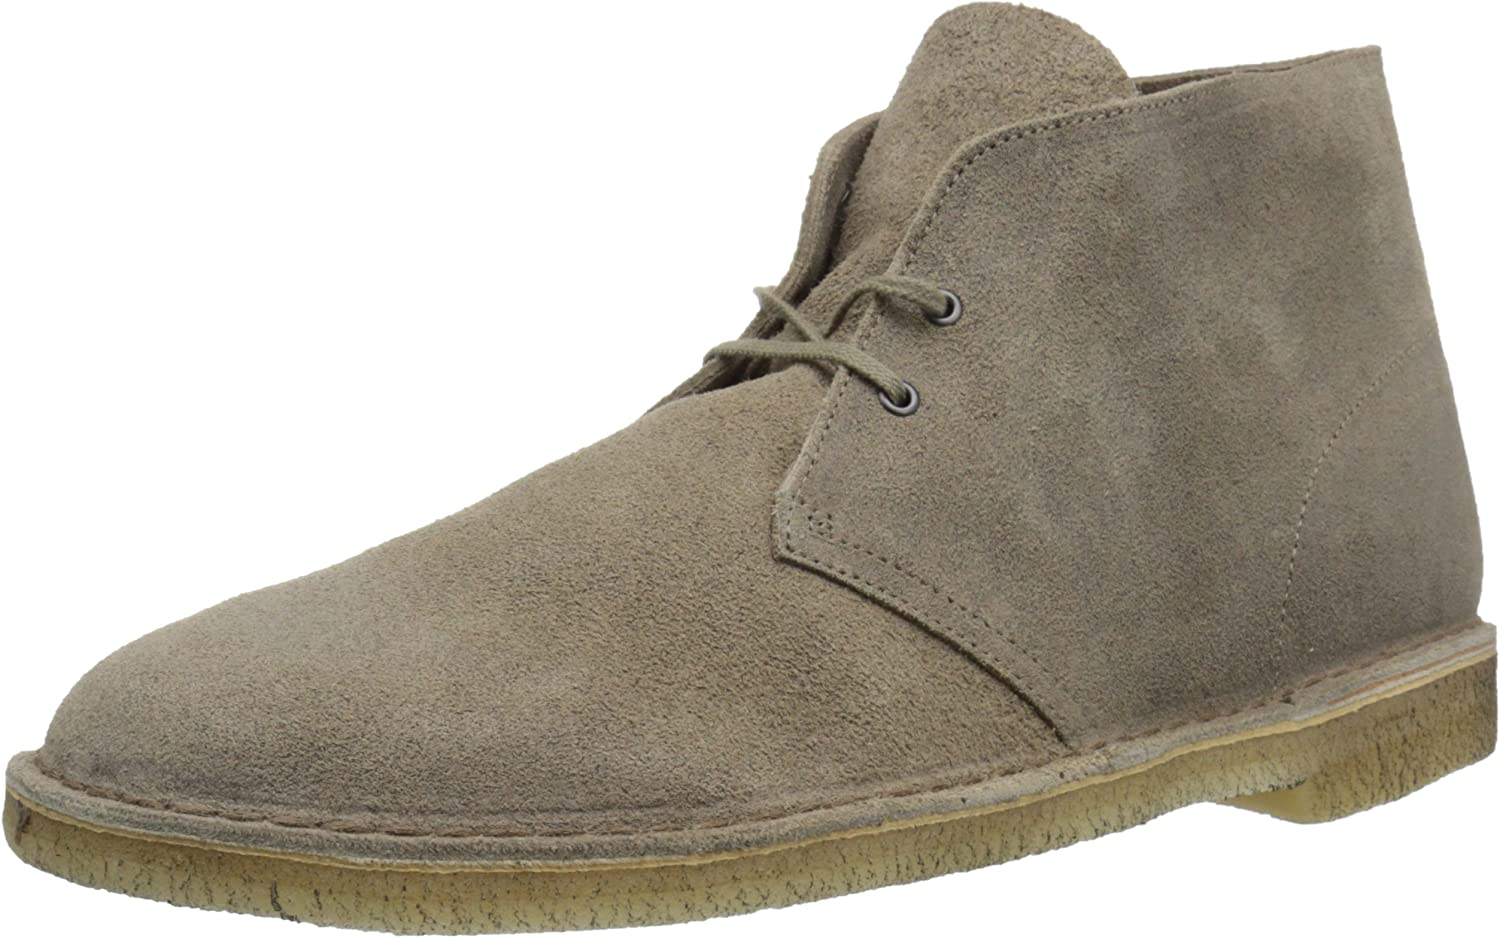 Clarks Mens Desert Boot Taupe Distressed Boots M,7 D(M) US